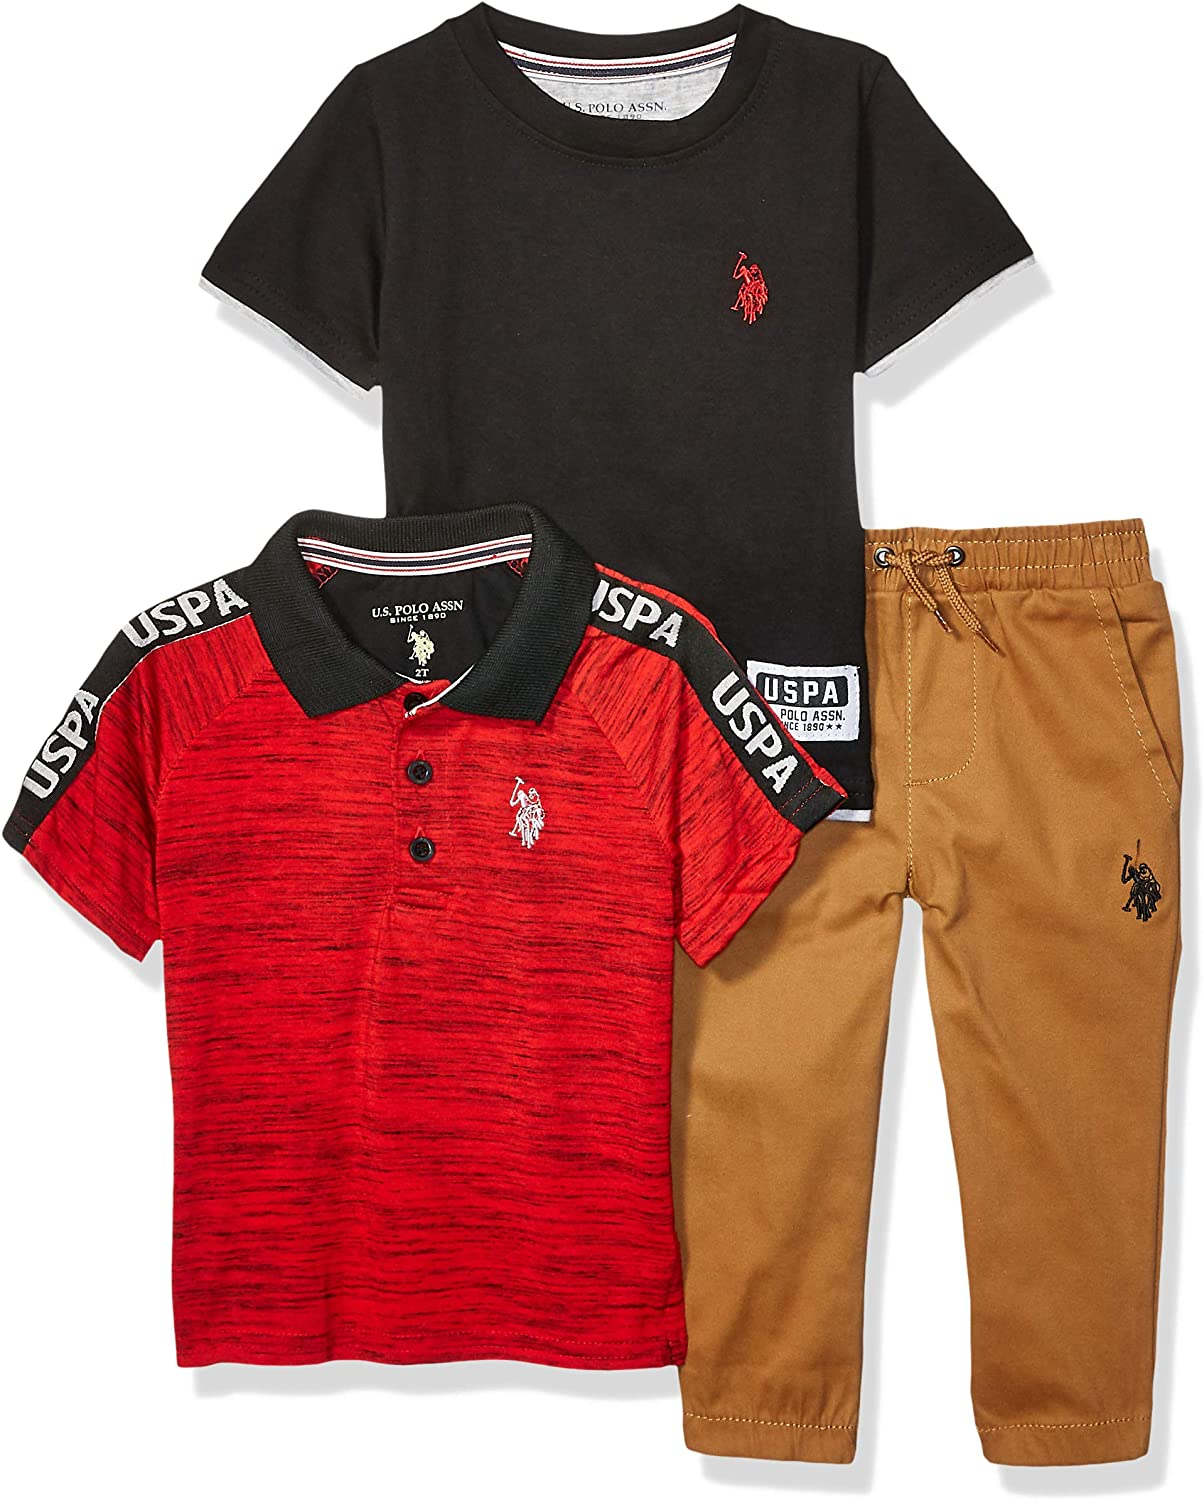 US Polo Assn Toddler//Little Boys Red Polo /& Short Set Size 2T 3T 4T 4 5 6 7